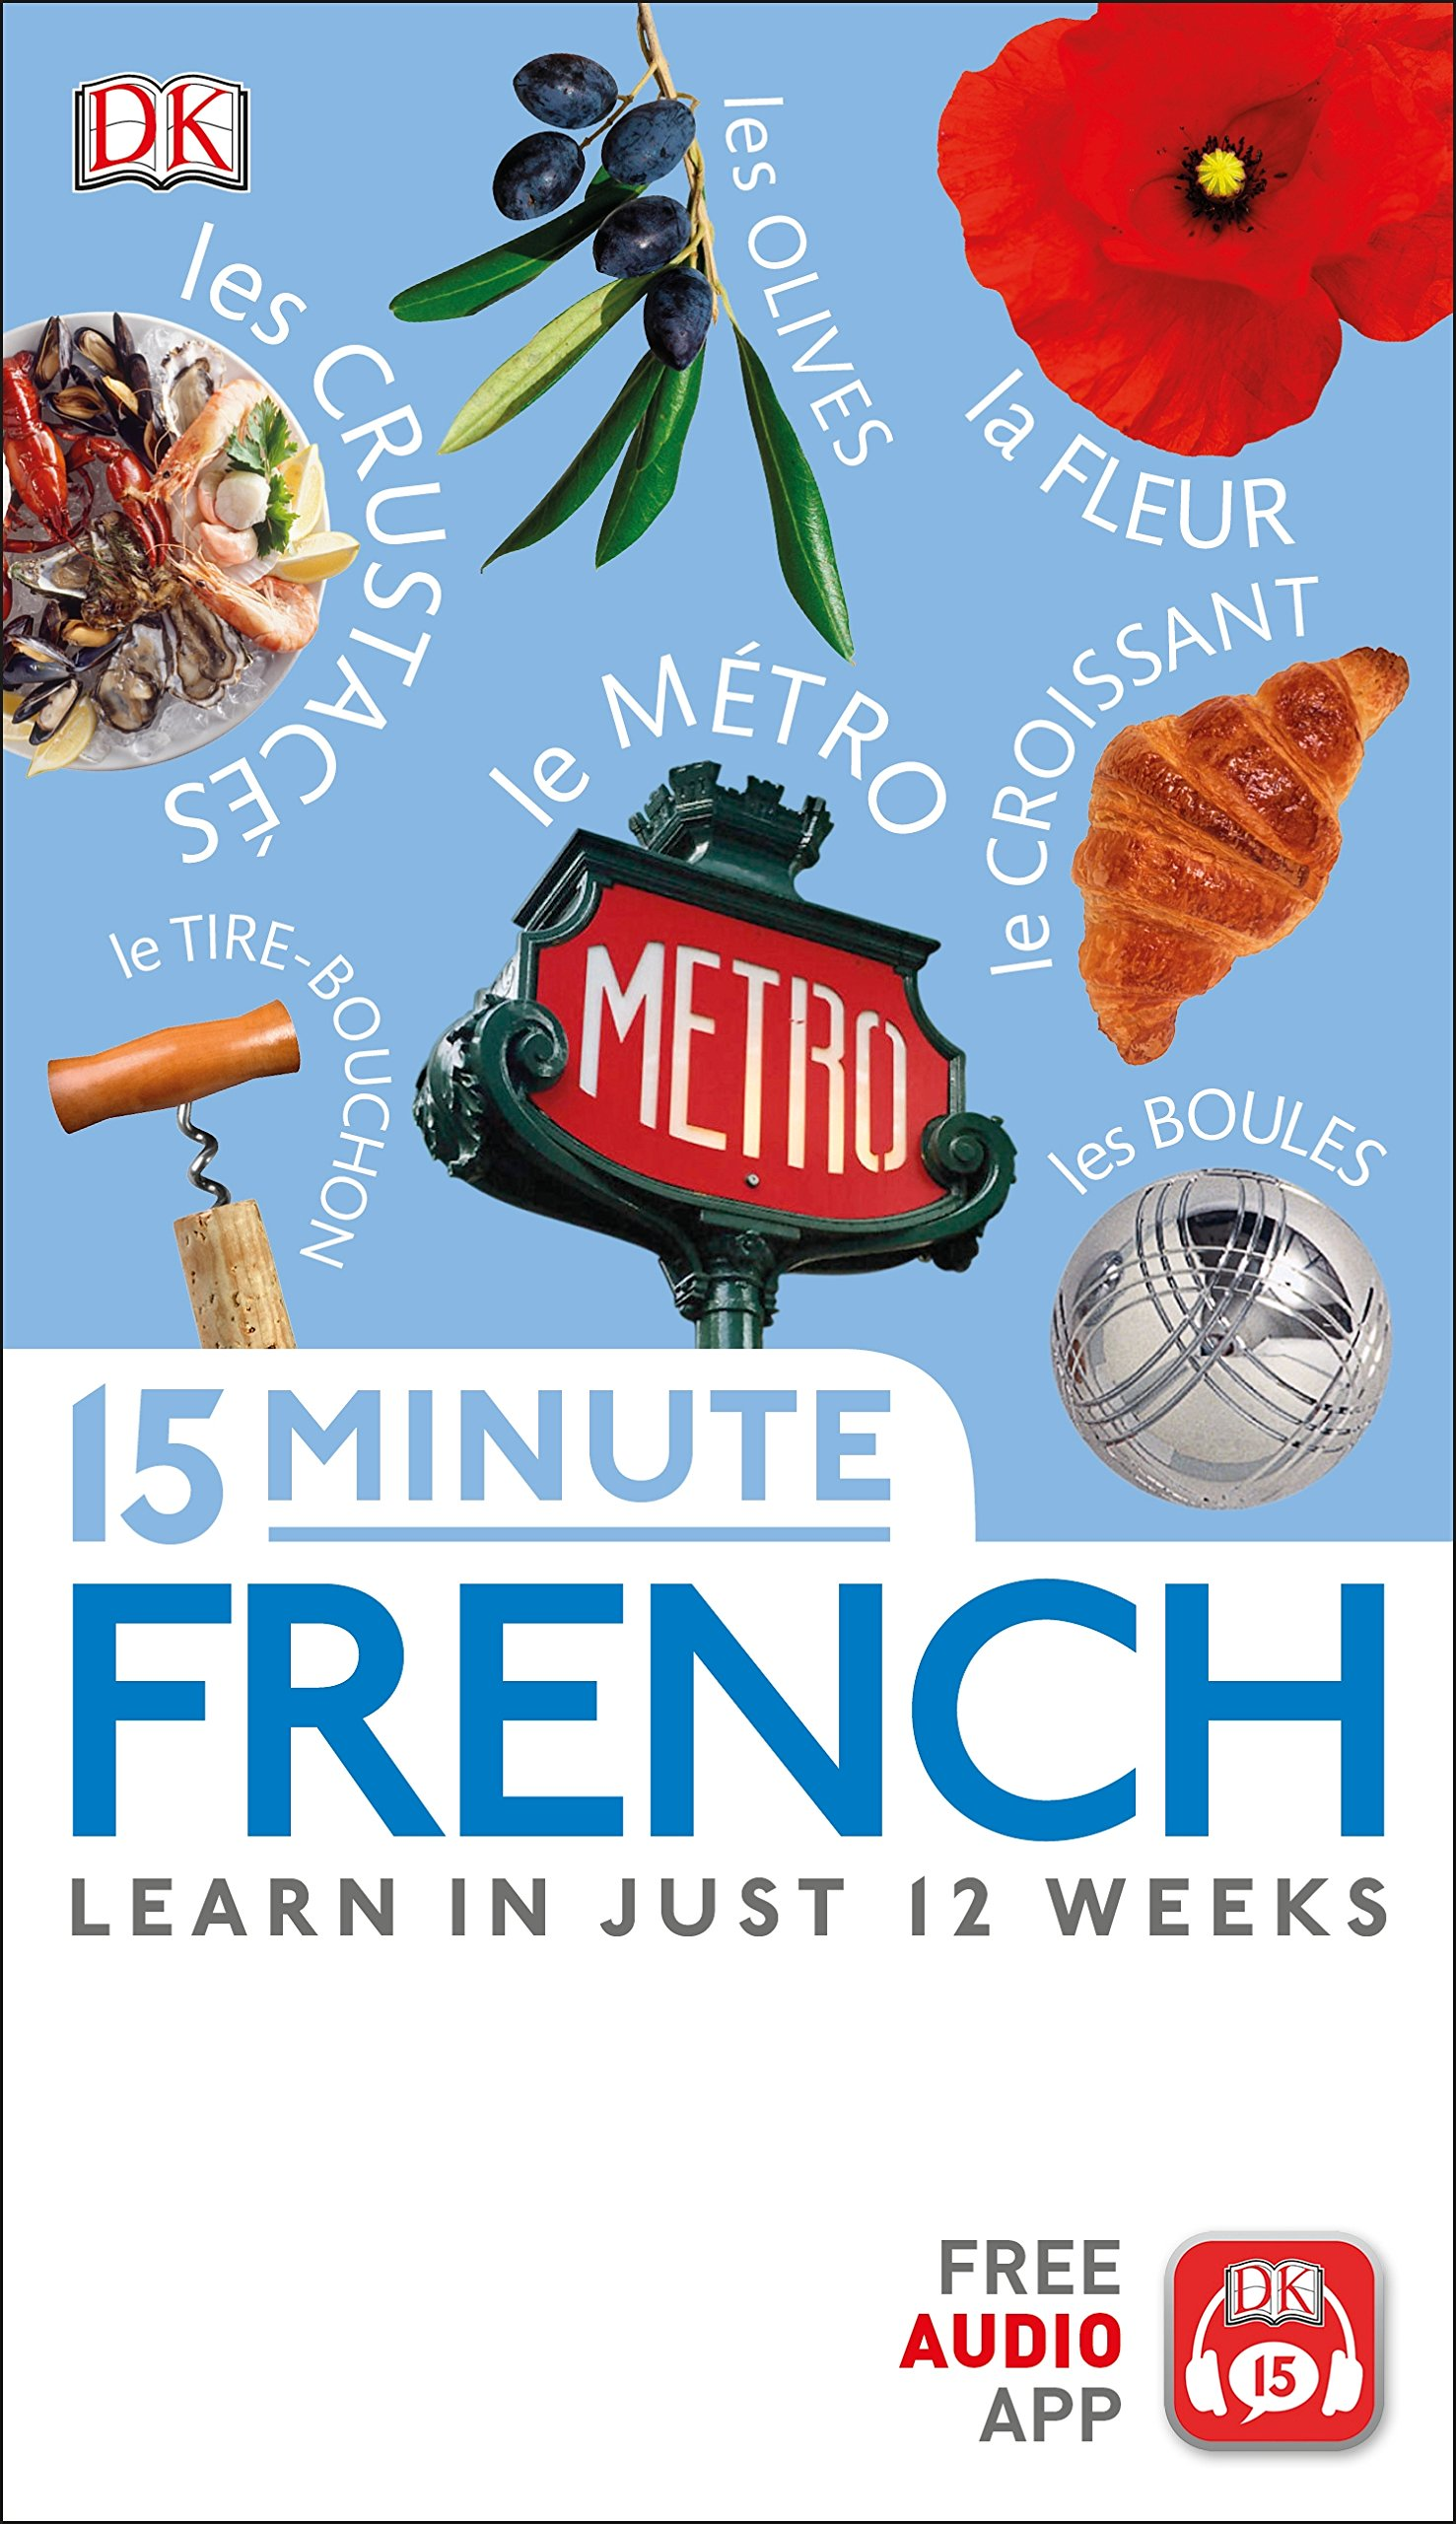 15 Minute French Learn In Just 12 Weeks Eyewitness Travel 15 Minute Dk 9780241302224 Amazon Com Books